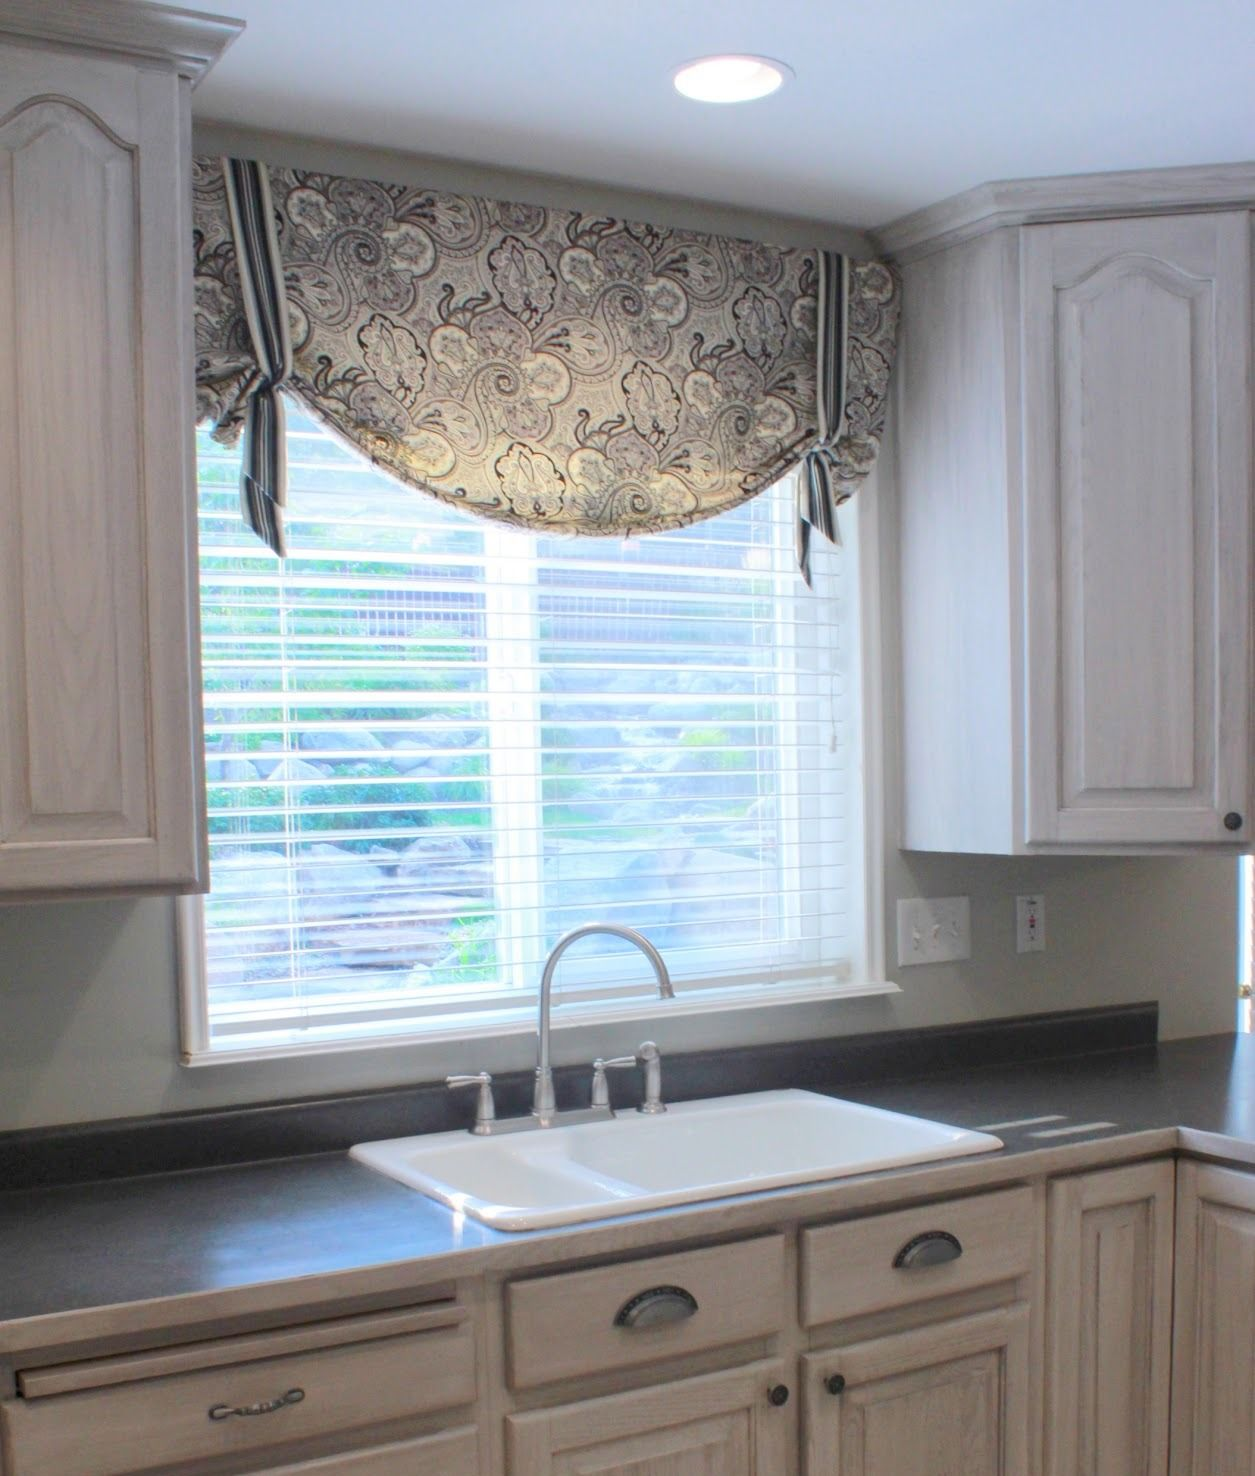 Kitchen Window Valances Kitchen Valance Patterns Kitchen Valance Ideas Floral Pattern